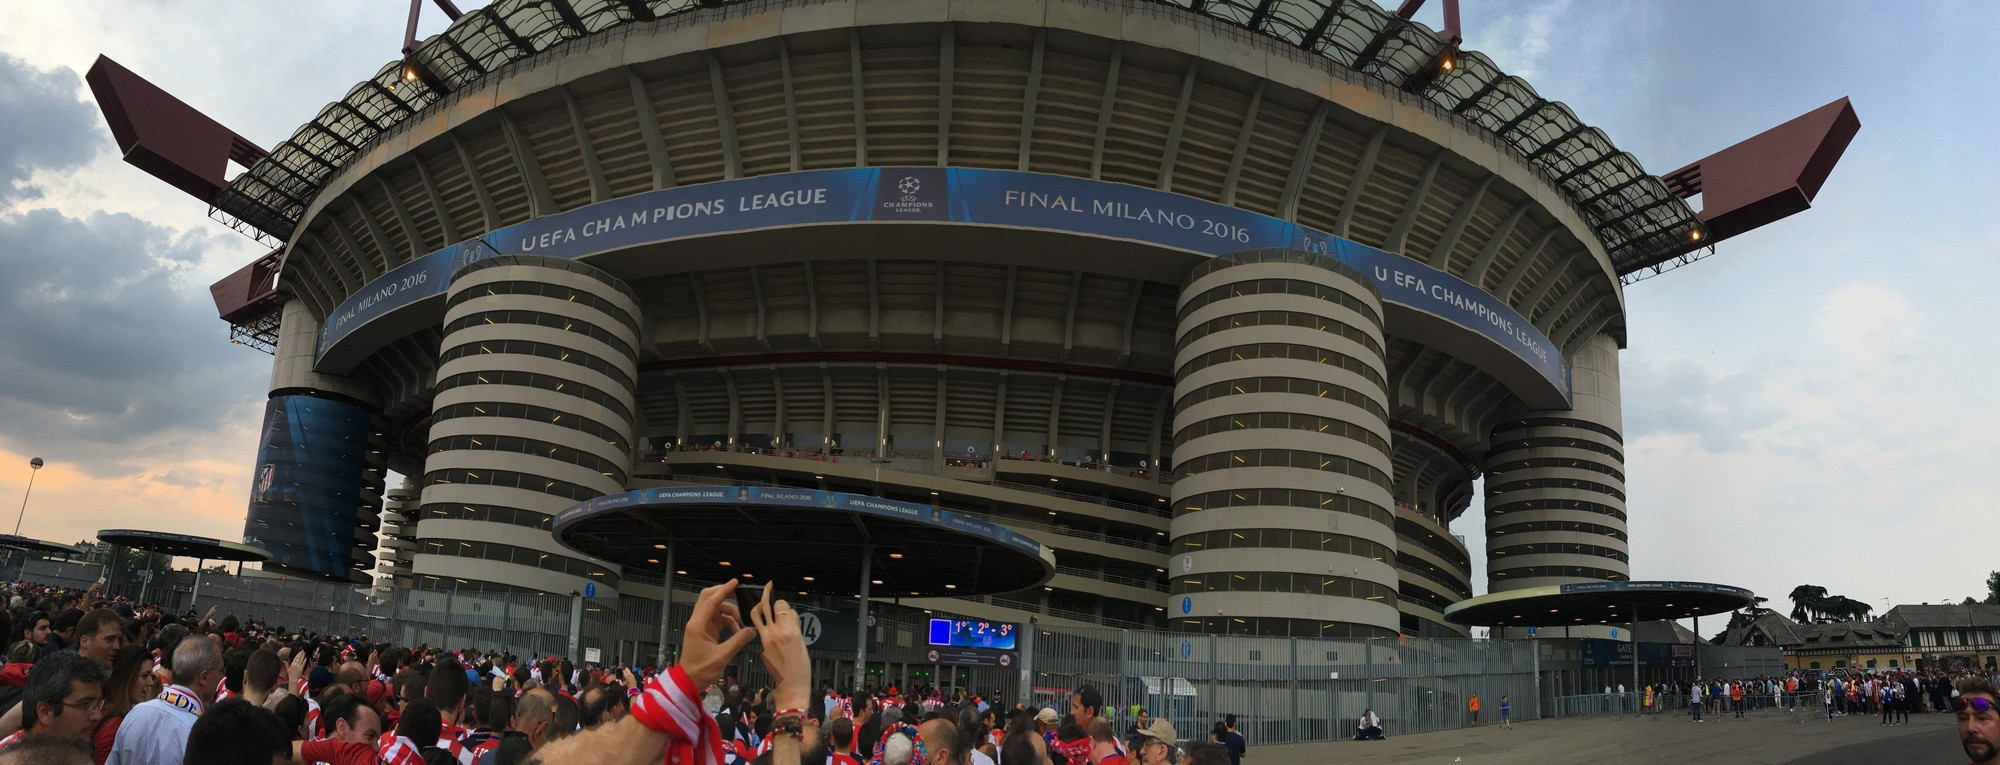 san siro outside panorama